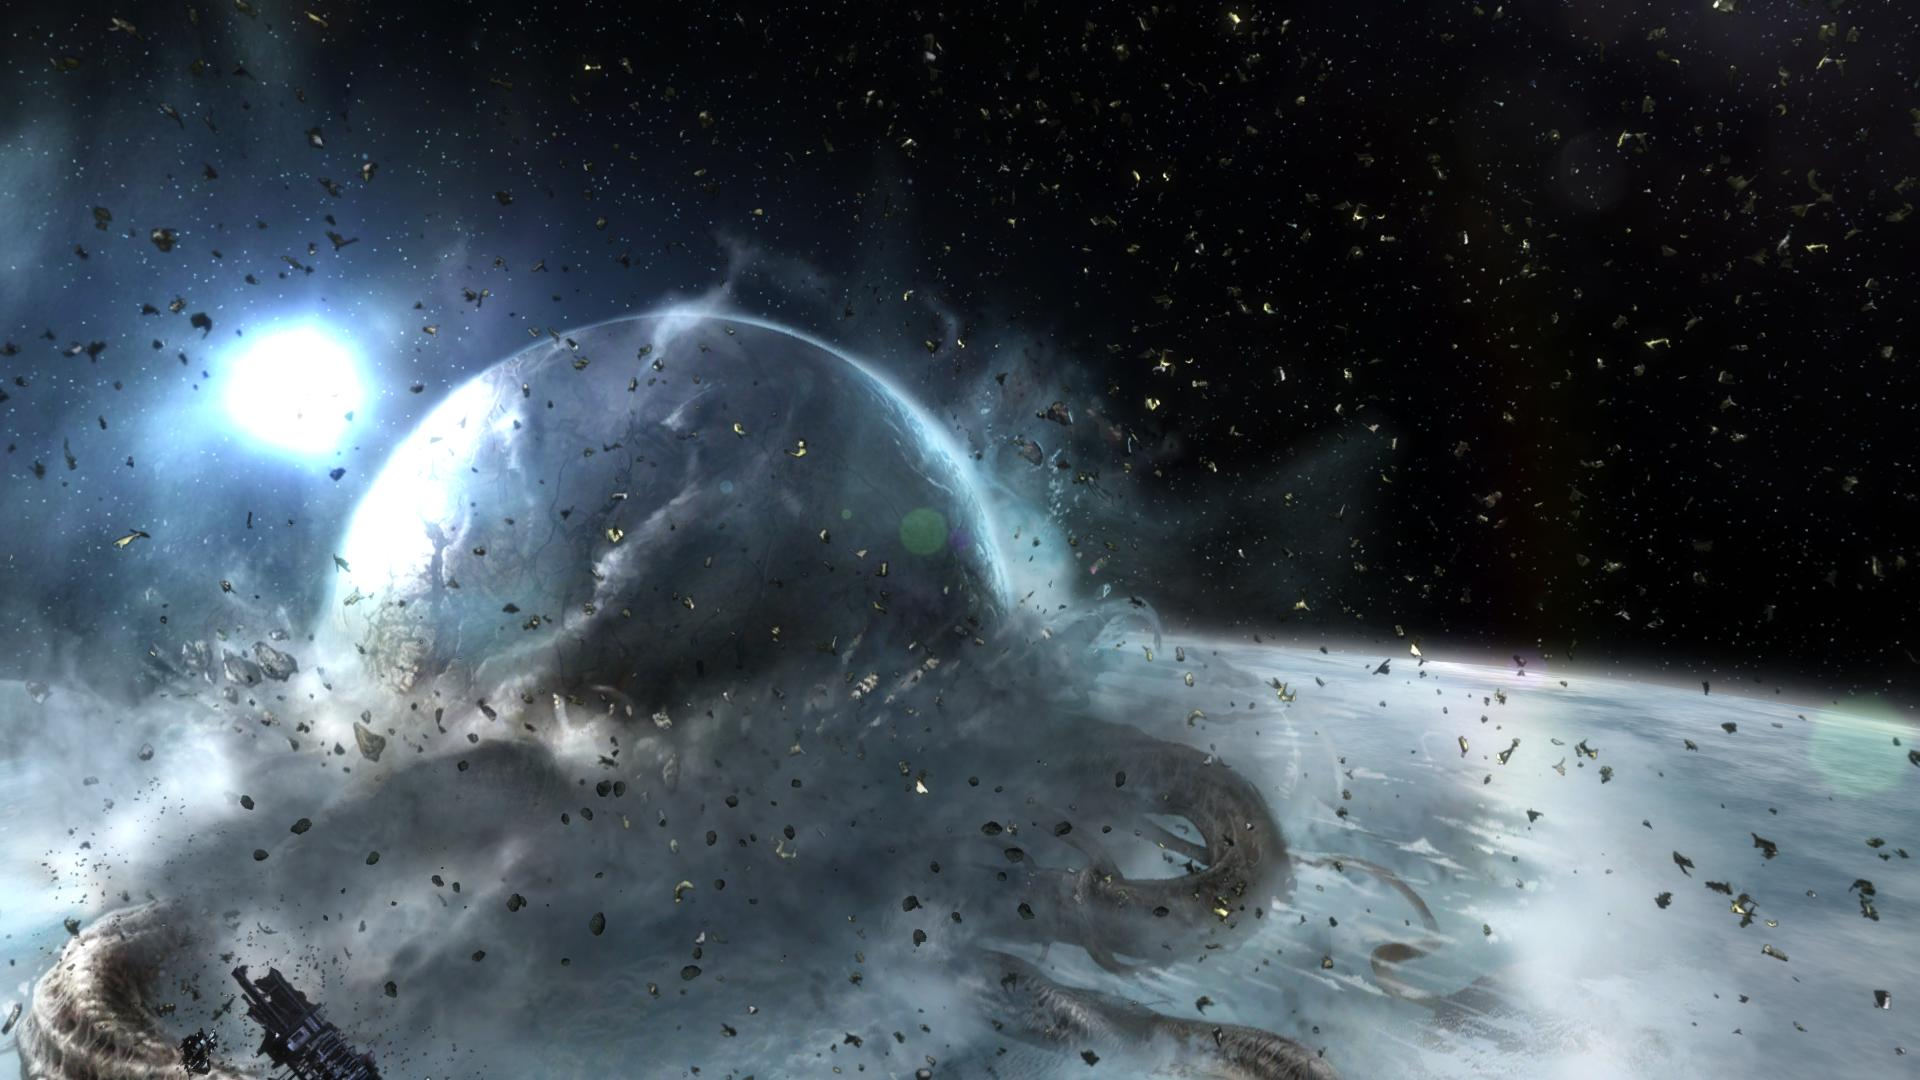 Dead space 3 wallpapers pictures images - Space wallpaper pc ...